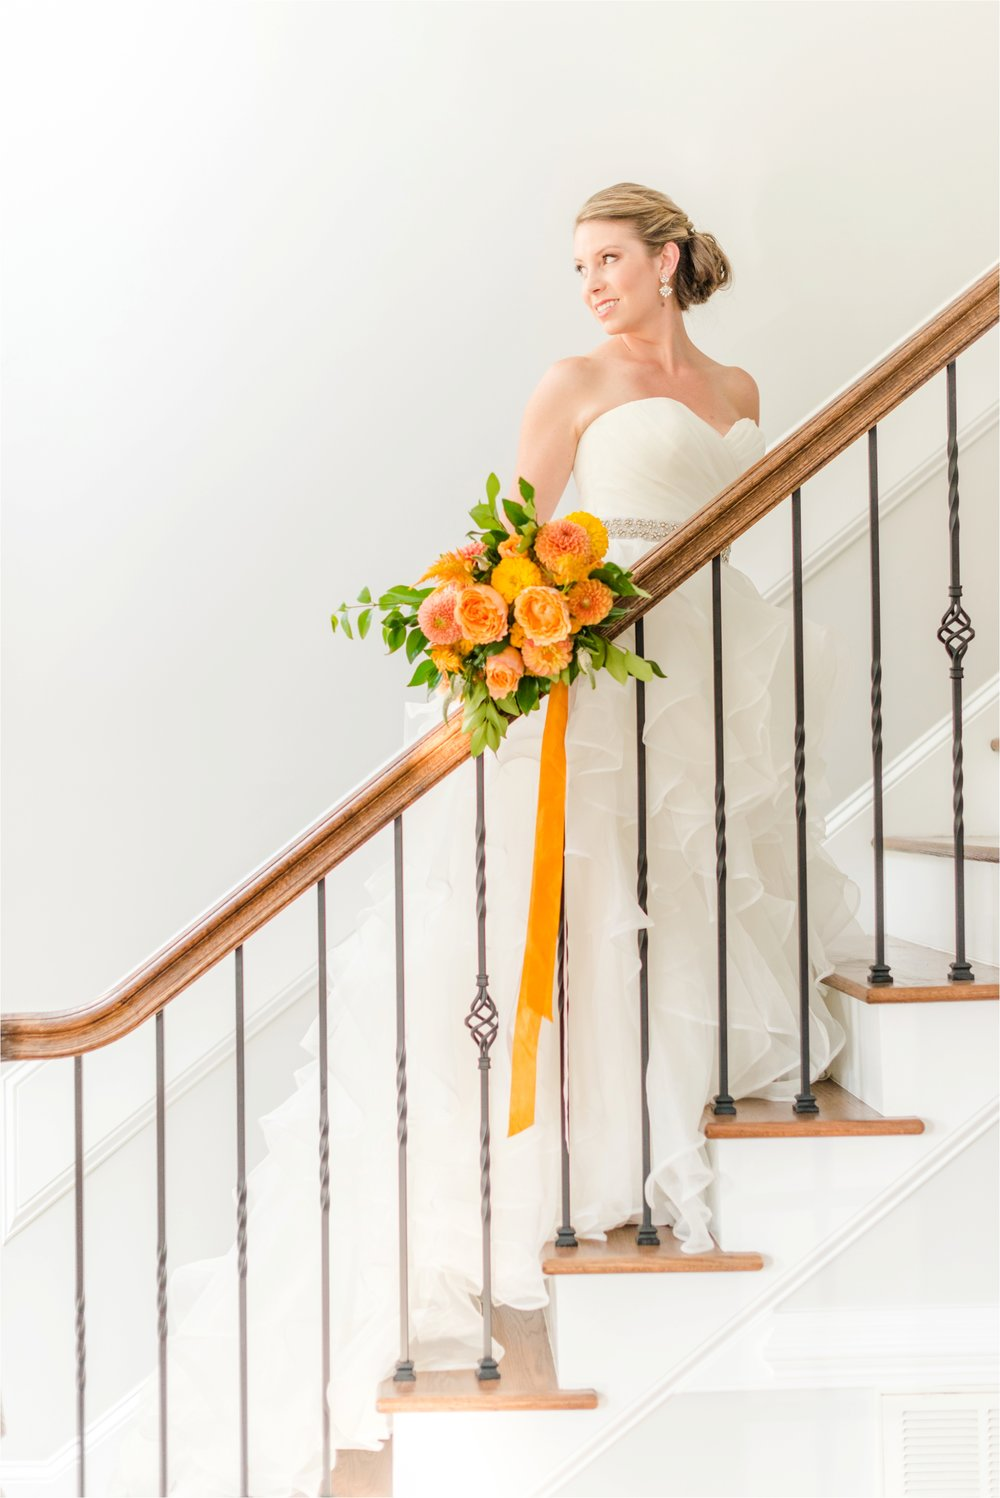 Classic Bridal Portrait Raleigh North Carolina Wedding Photographer Jaclyn Auletta Photography